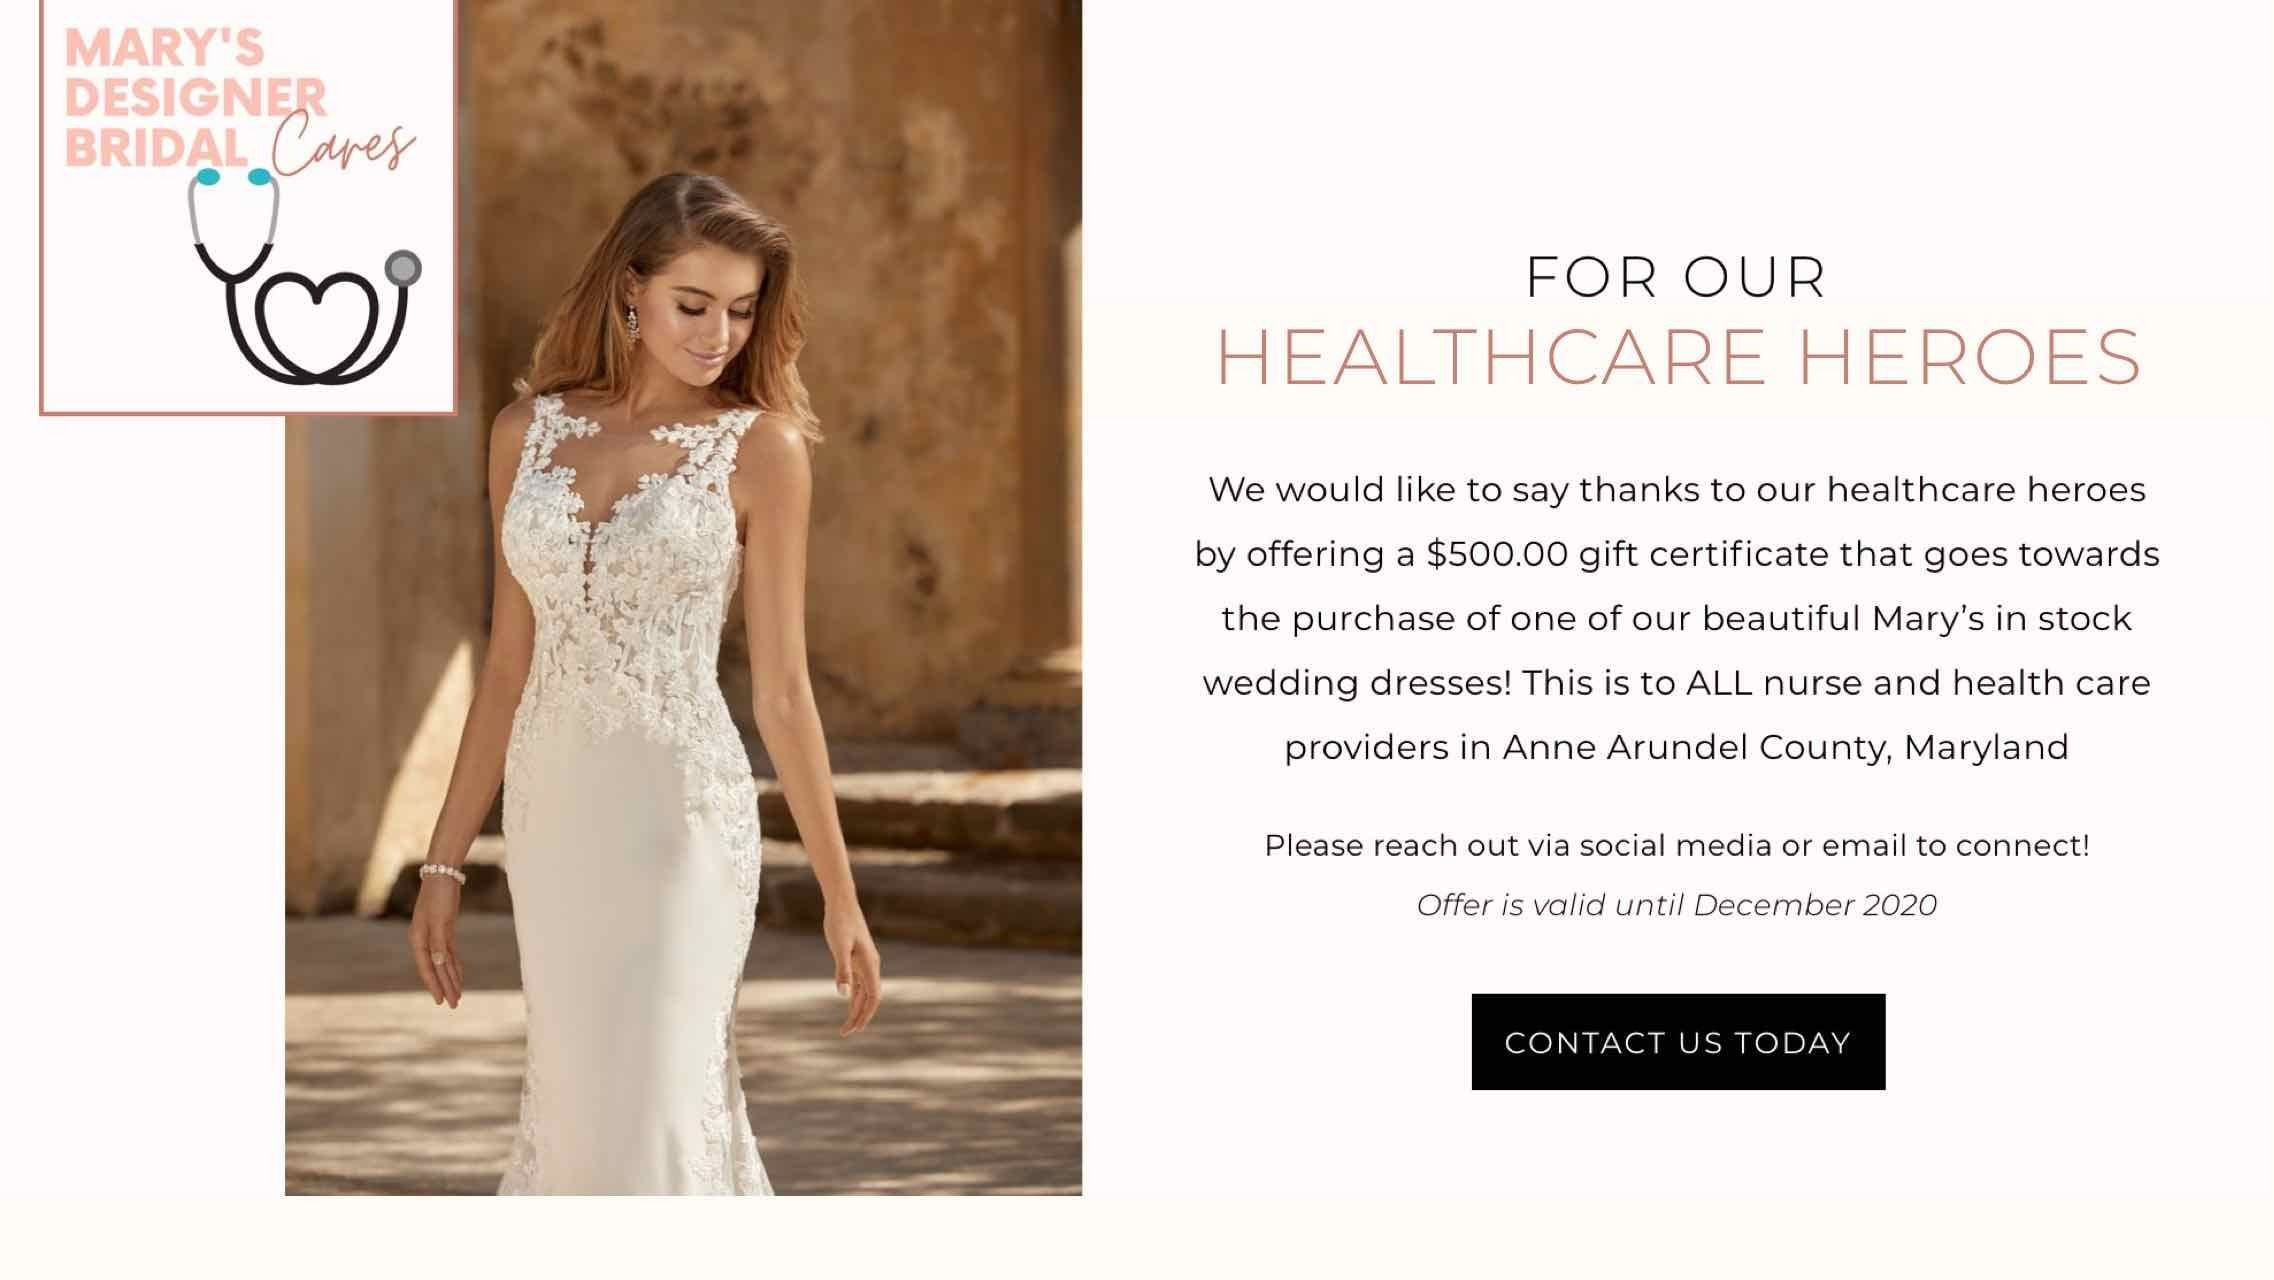 Healthcare heroes. $500 discount towards a wedding dress for those working in healthcare industry. desktop image.